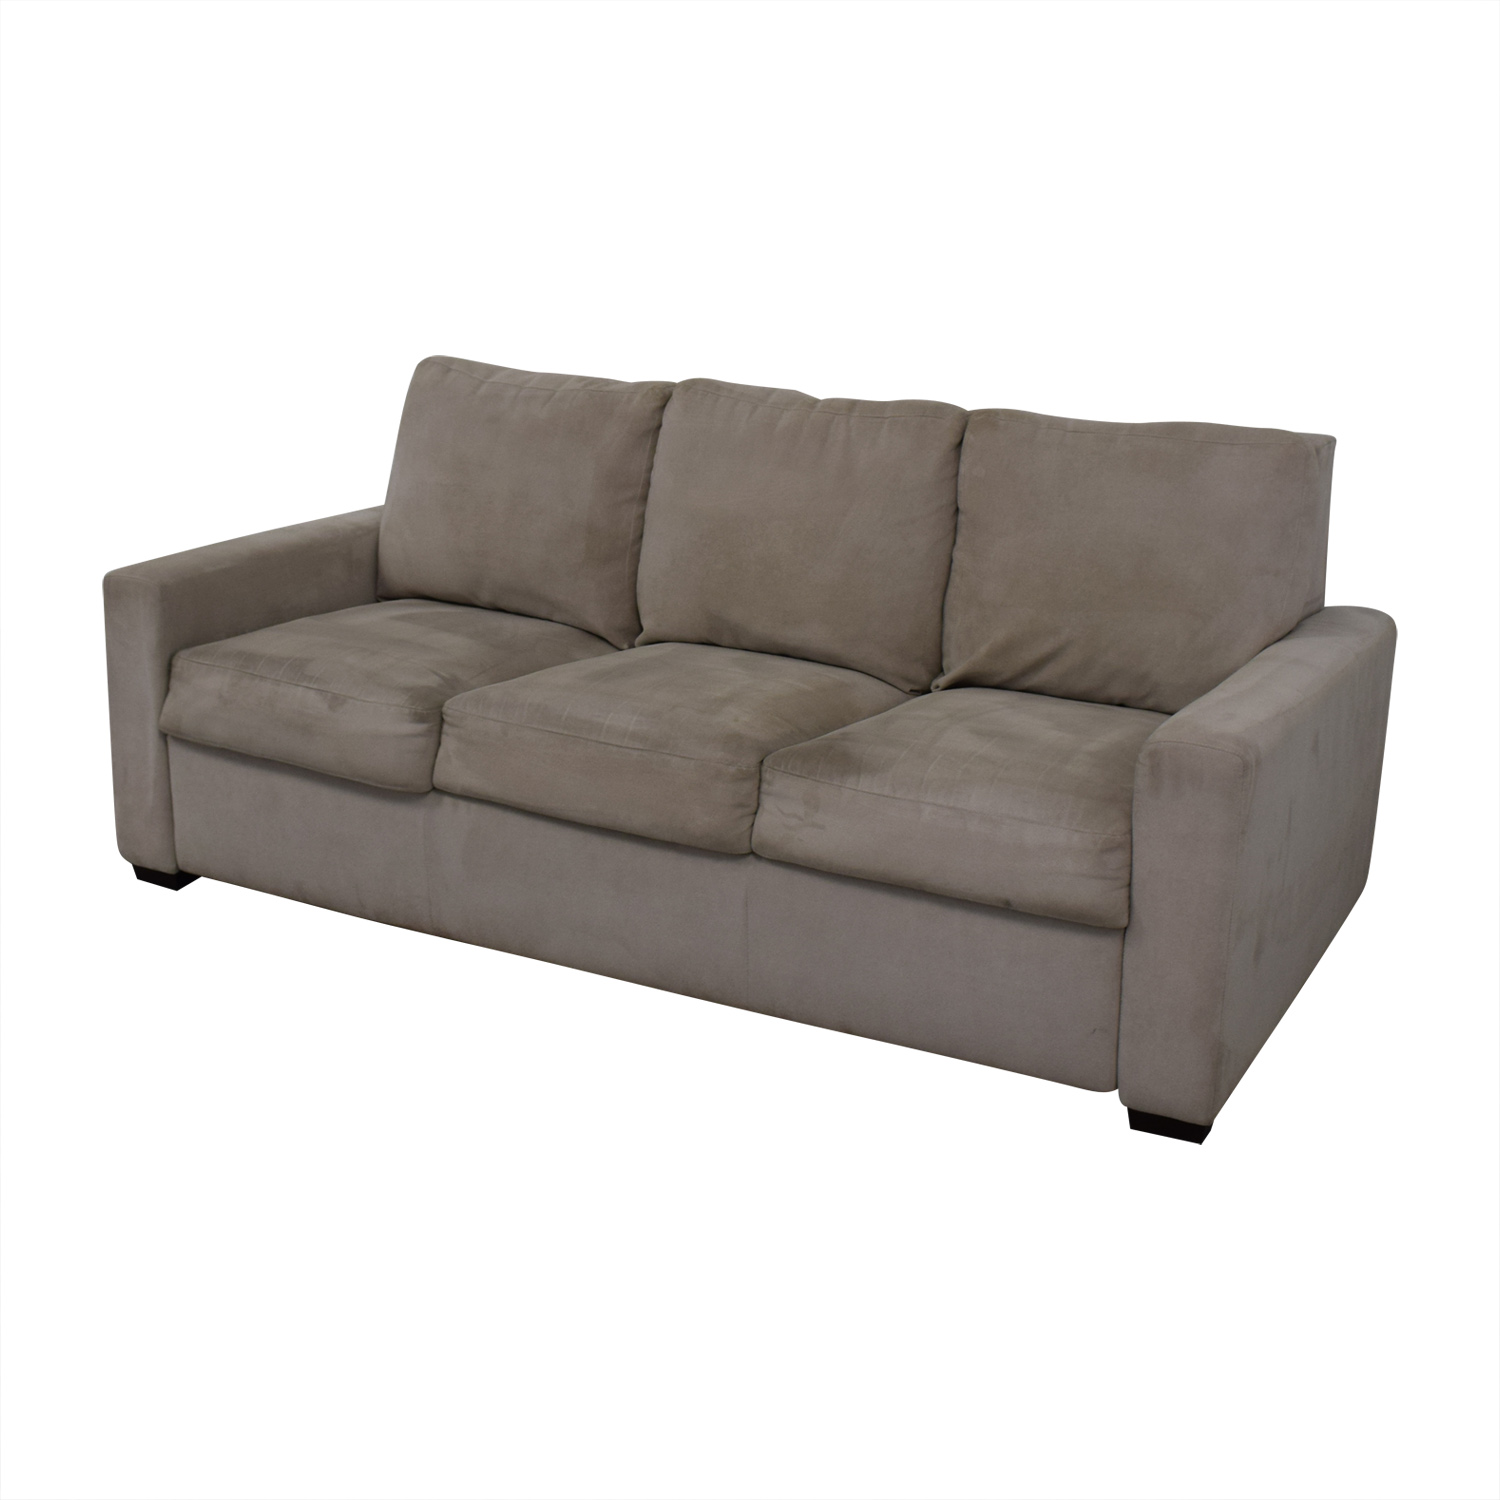 Room & Board Three Cushion Sofa / Classic Sofas